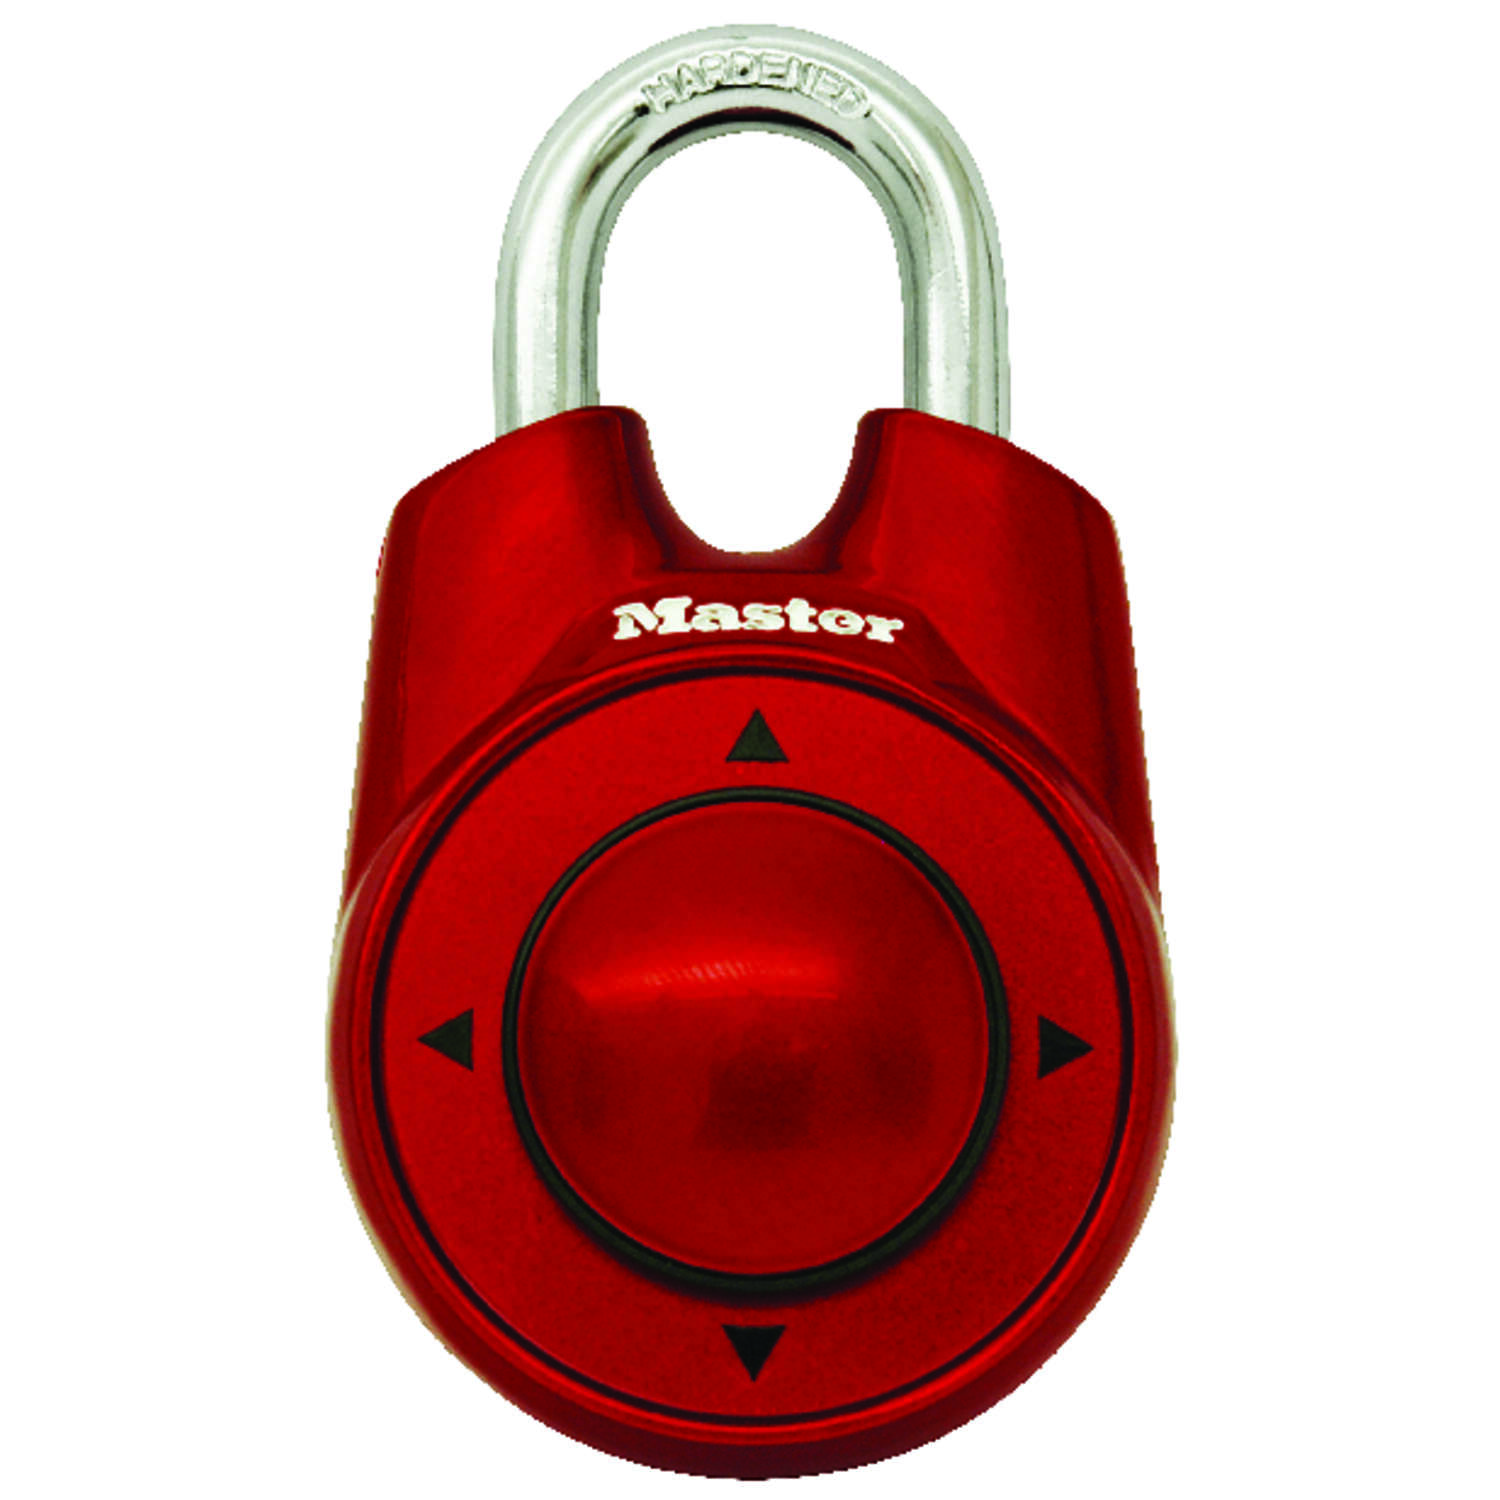 Master Lock  2-3/4 in. H x 1-1/8 in. W x 2 in. L Steel  Anti-Shim Technology  Padlock  1 pk